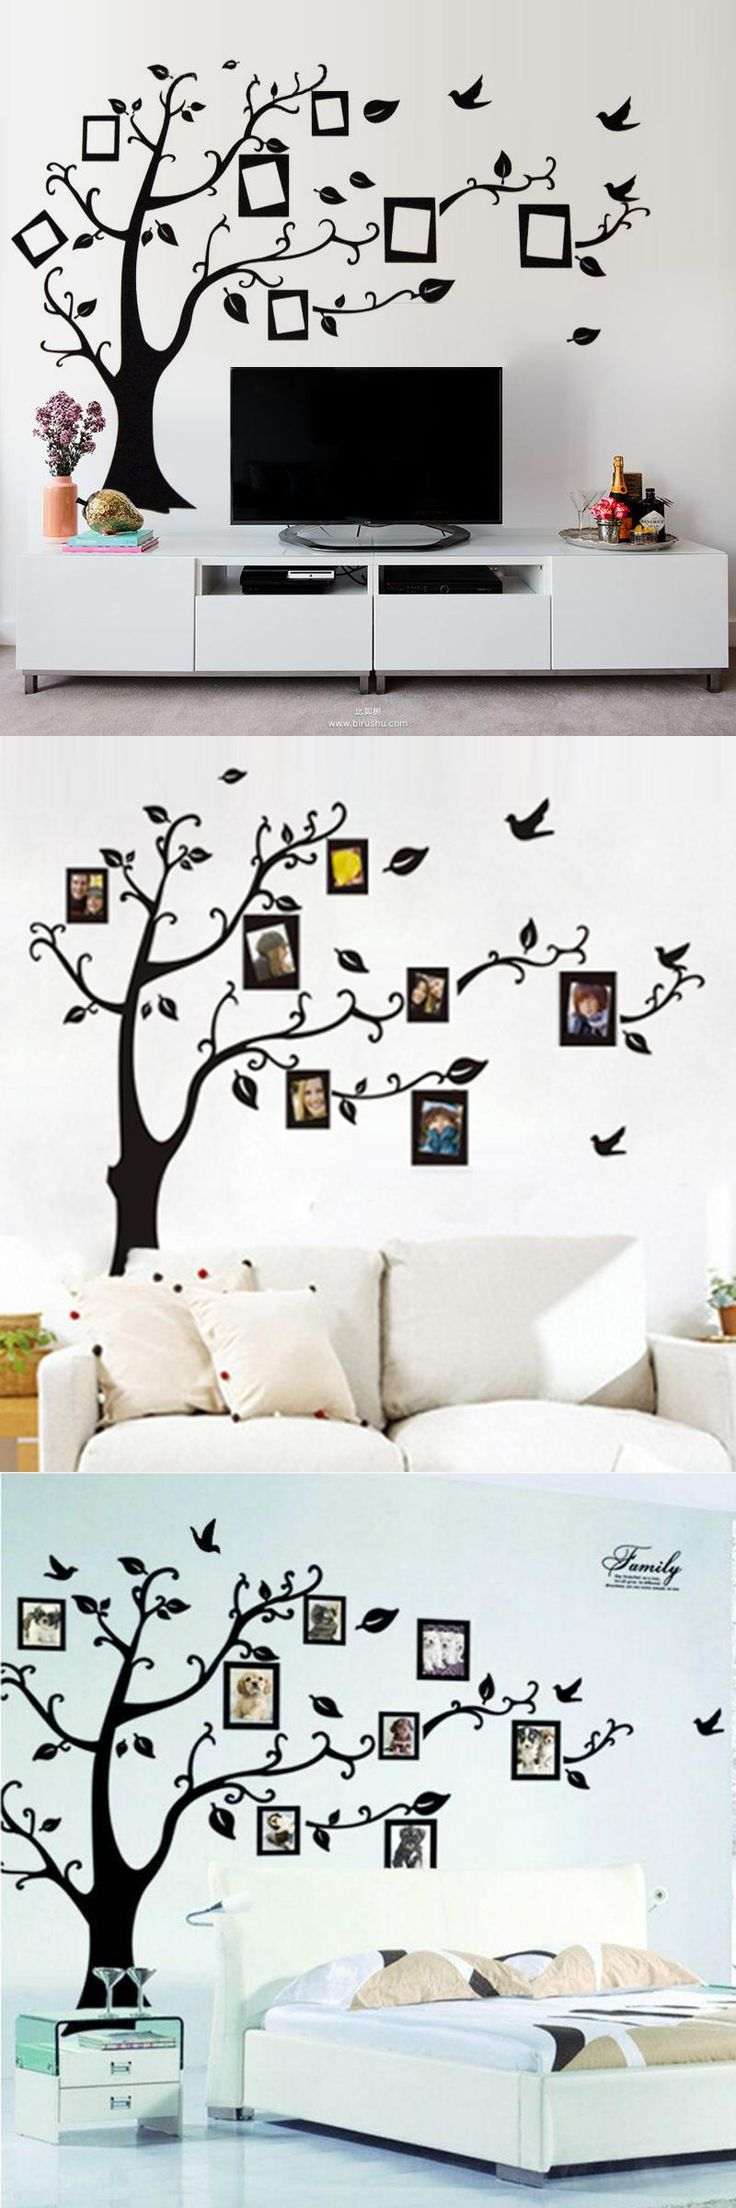 Best 25 brown wall stickers ideas on pinterest vinyl wall big size brownblack photo frame tree wall stickers zooyoo94ab quotes wall arts home amipublicfo Image collections